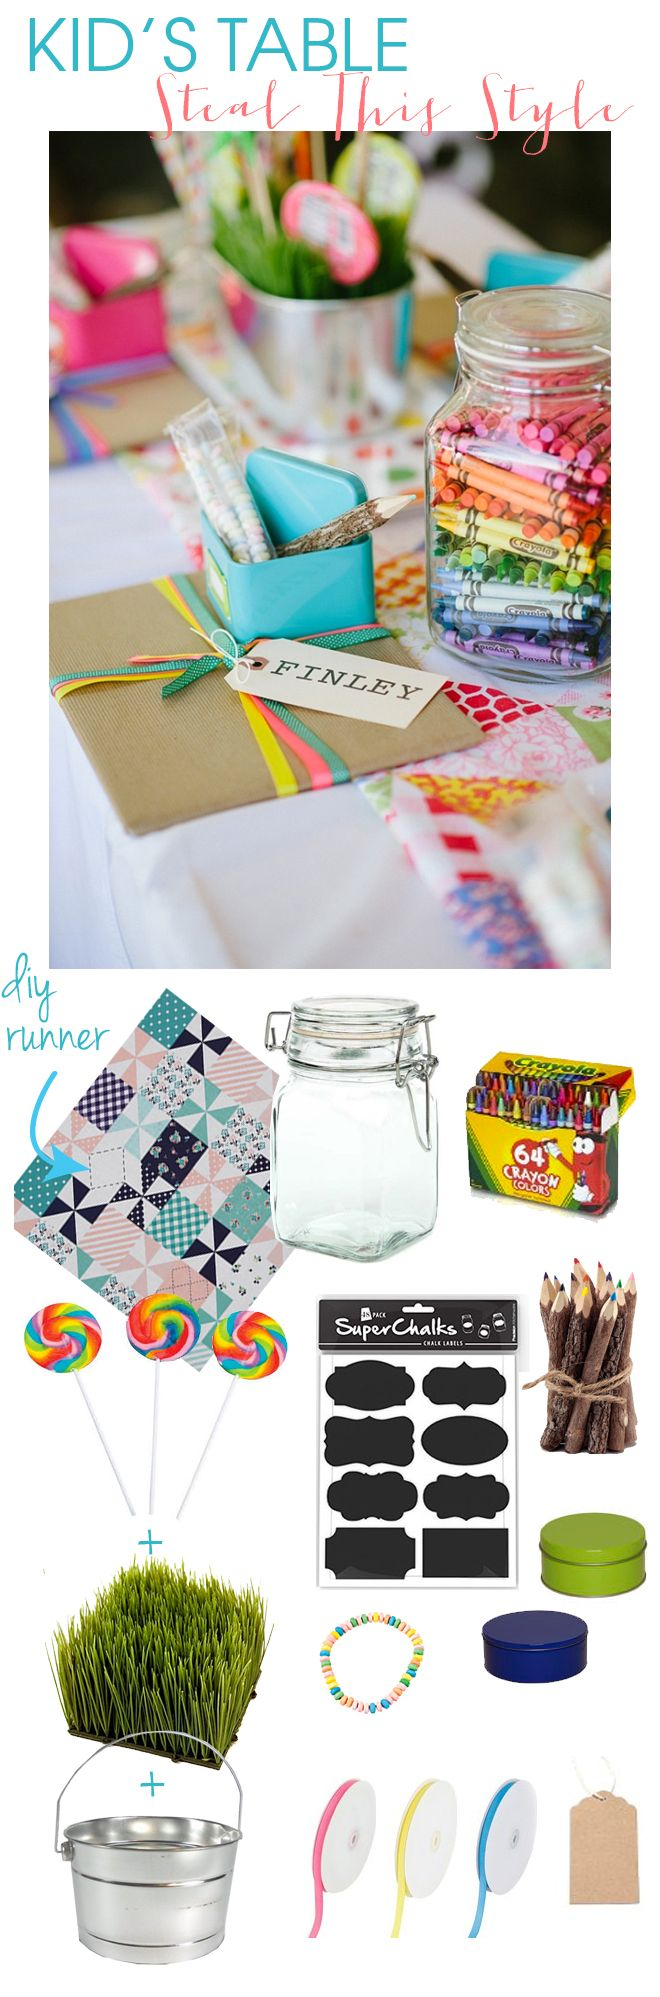 Fun and FREE ideas to create a happy, wedding kids table! | Kid ...